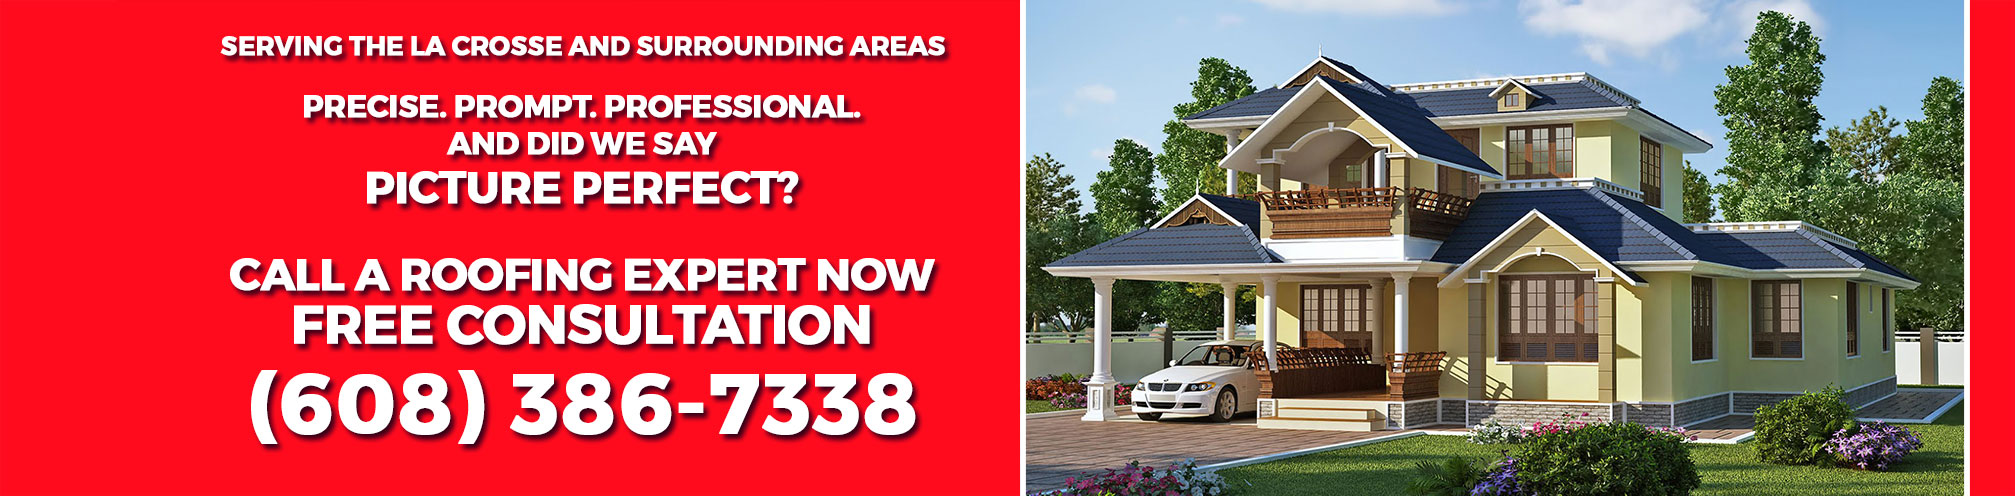 La Crosse Area Roofing Contractor Header